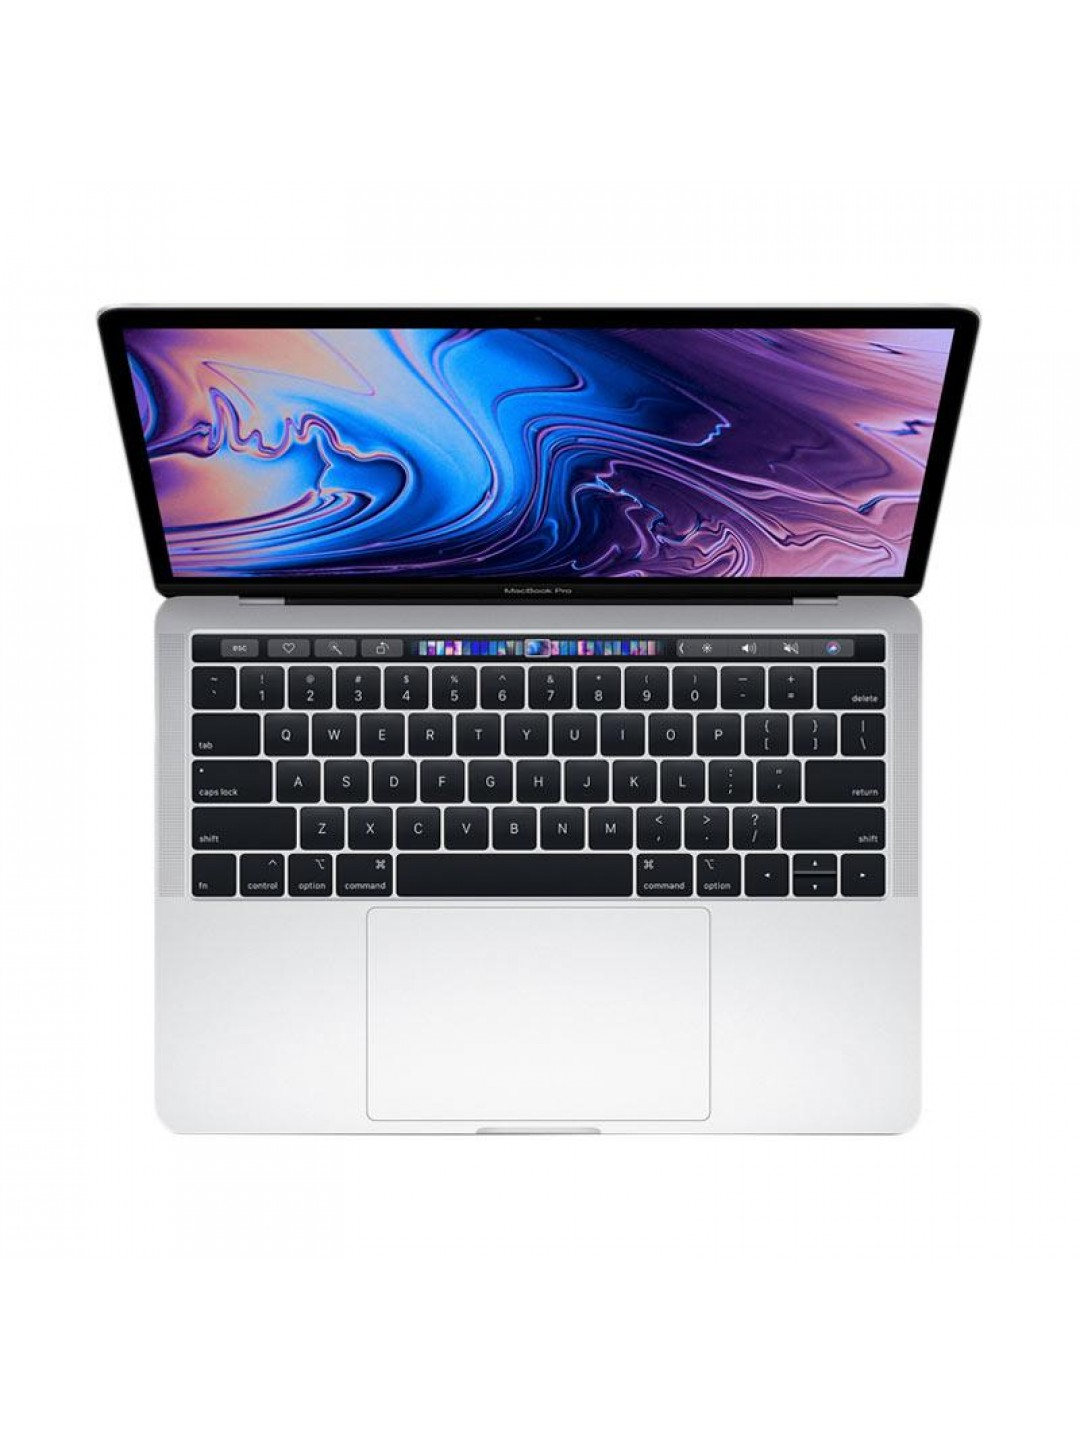 Laptop Macbook Pro Touch Bar 2018 MR9Q2 13.3 inch/2.3GHz quad-core Intel Core i5/8GB/256GB/Intel Iris Plus Graphics 655